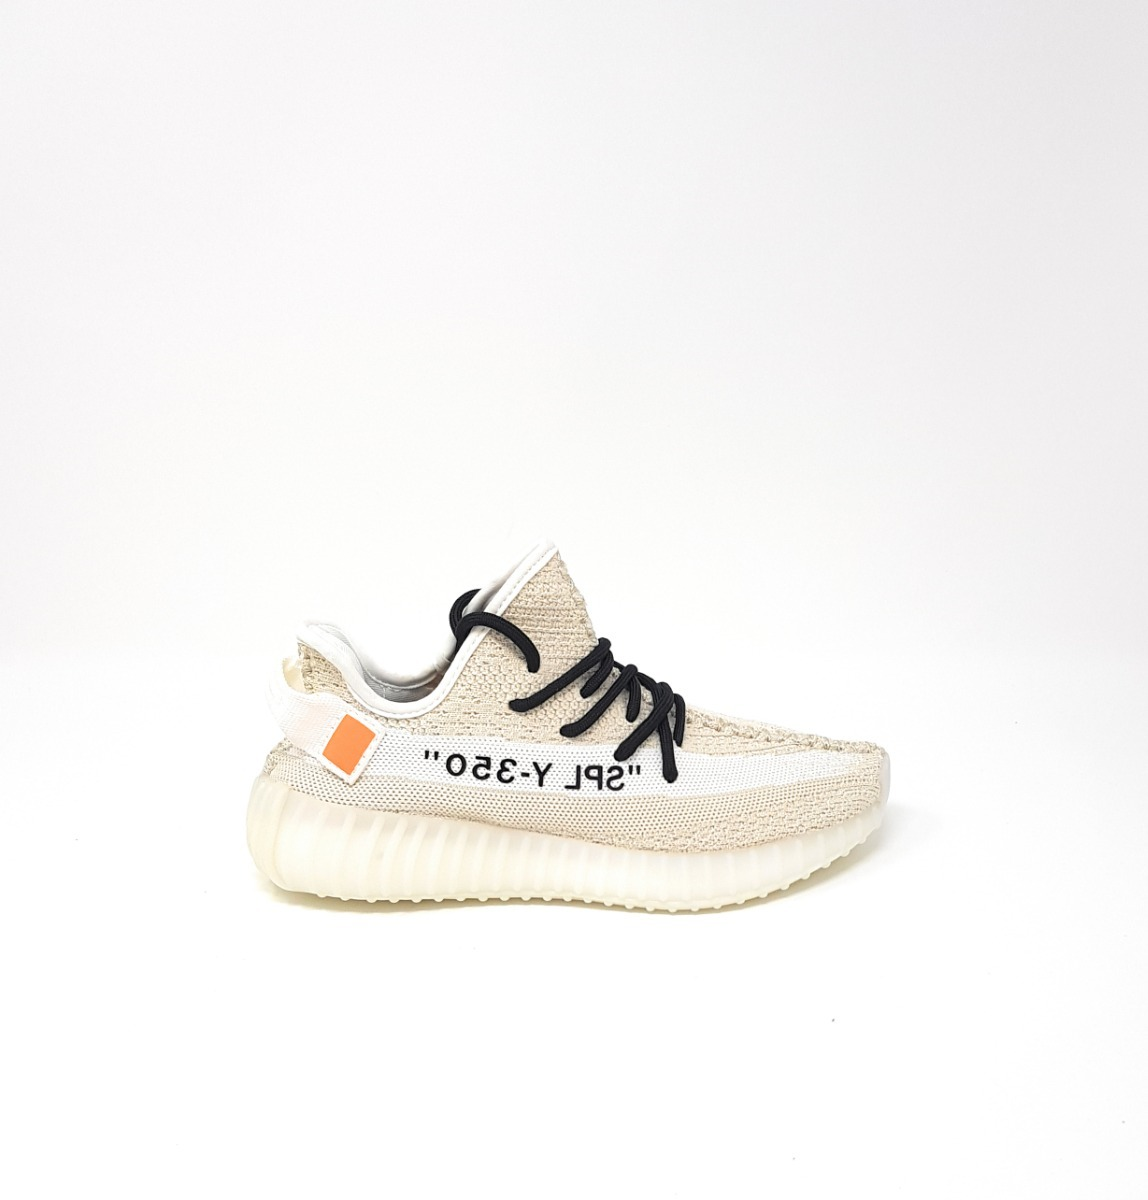 hot sale online 783e3 f6009 adidas yeezy boost 350 v2 off white hombre. Cargando zoom.